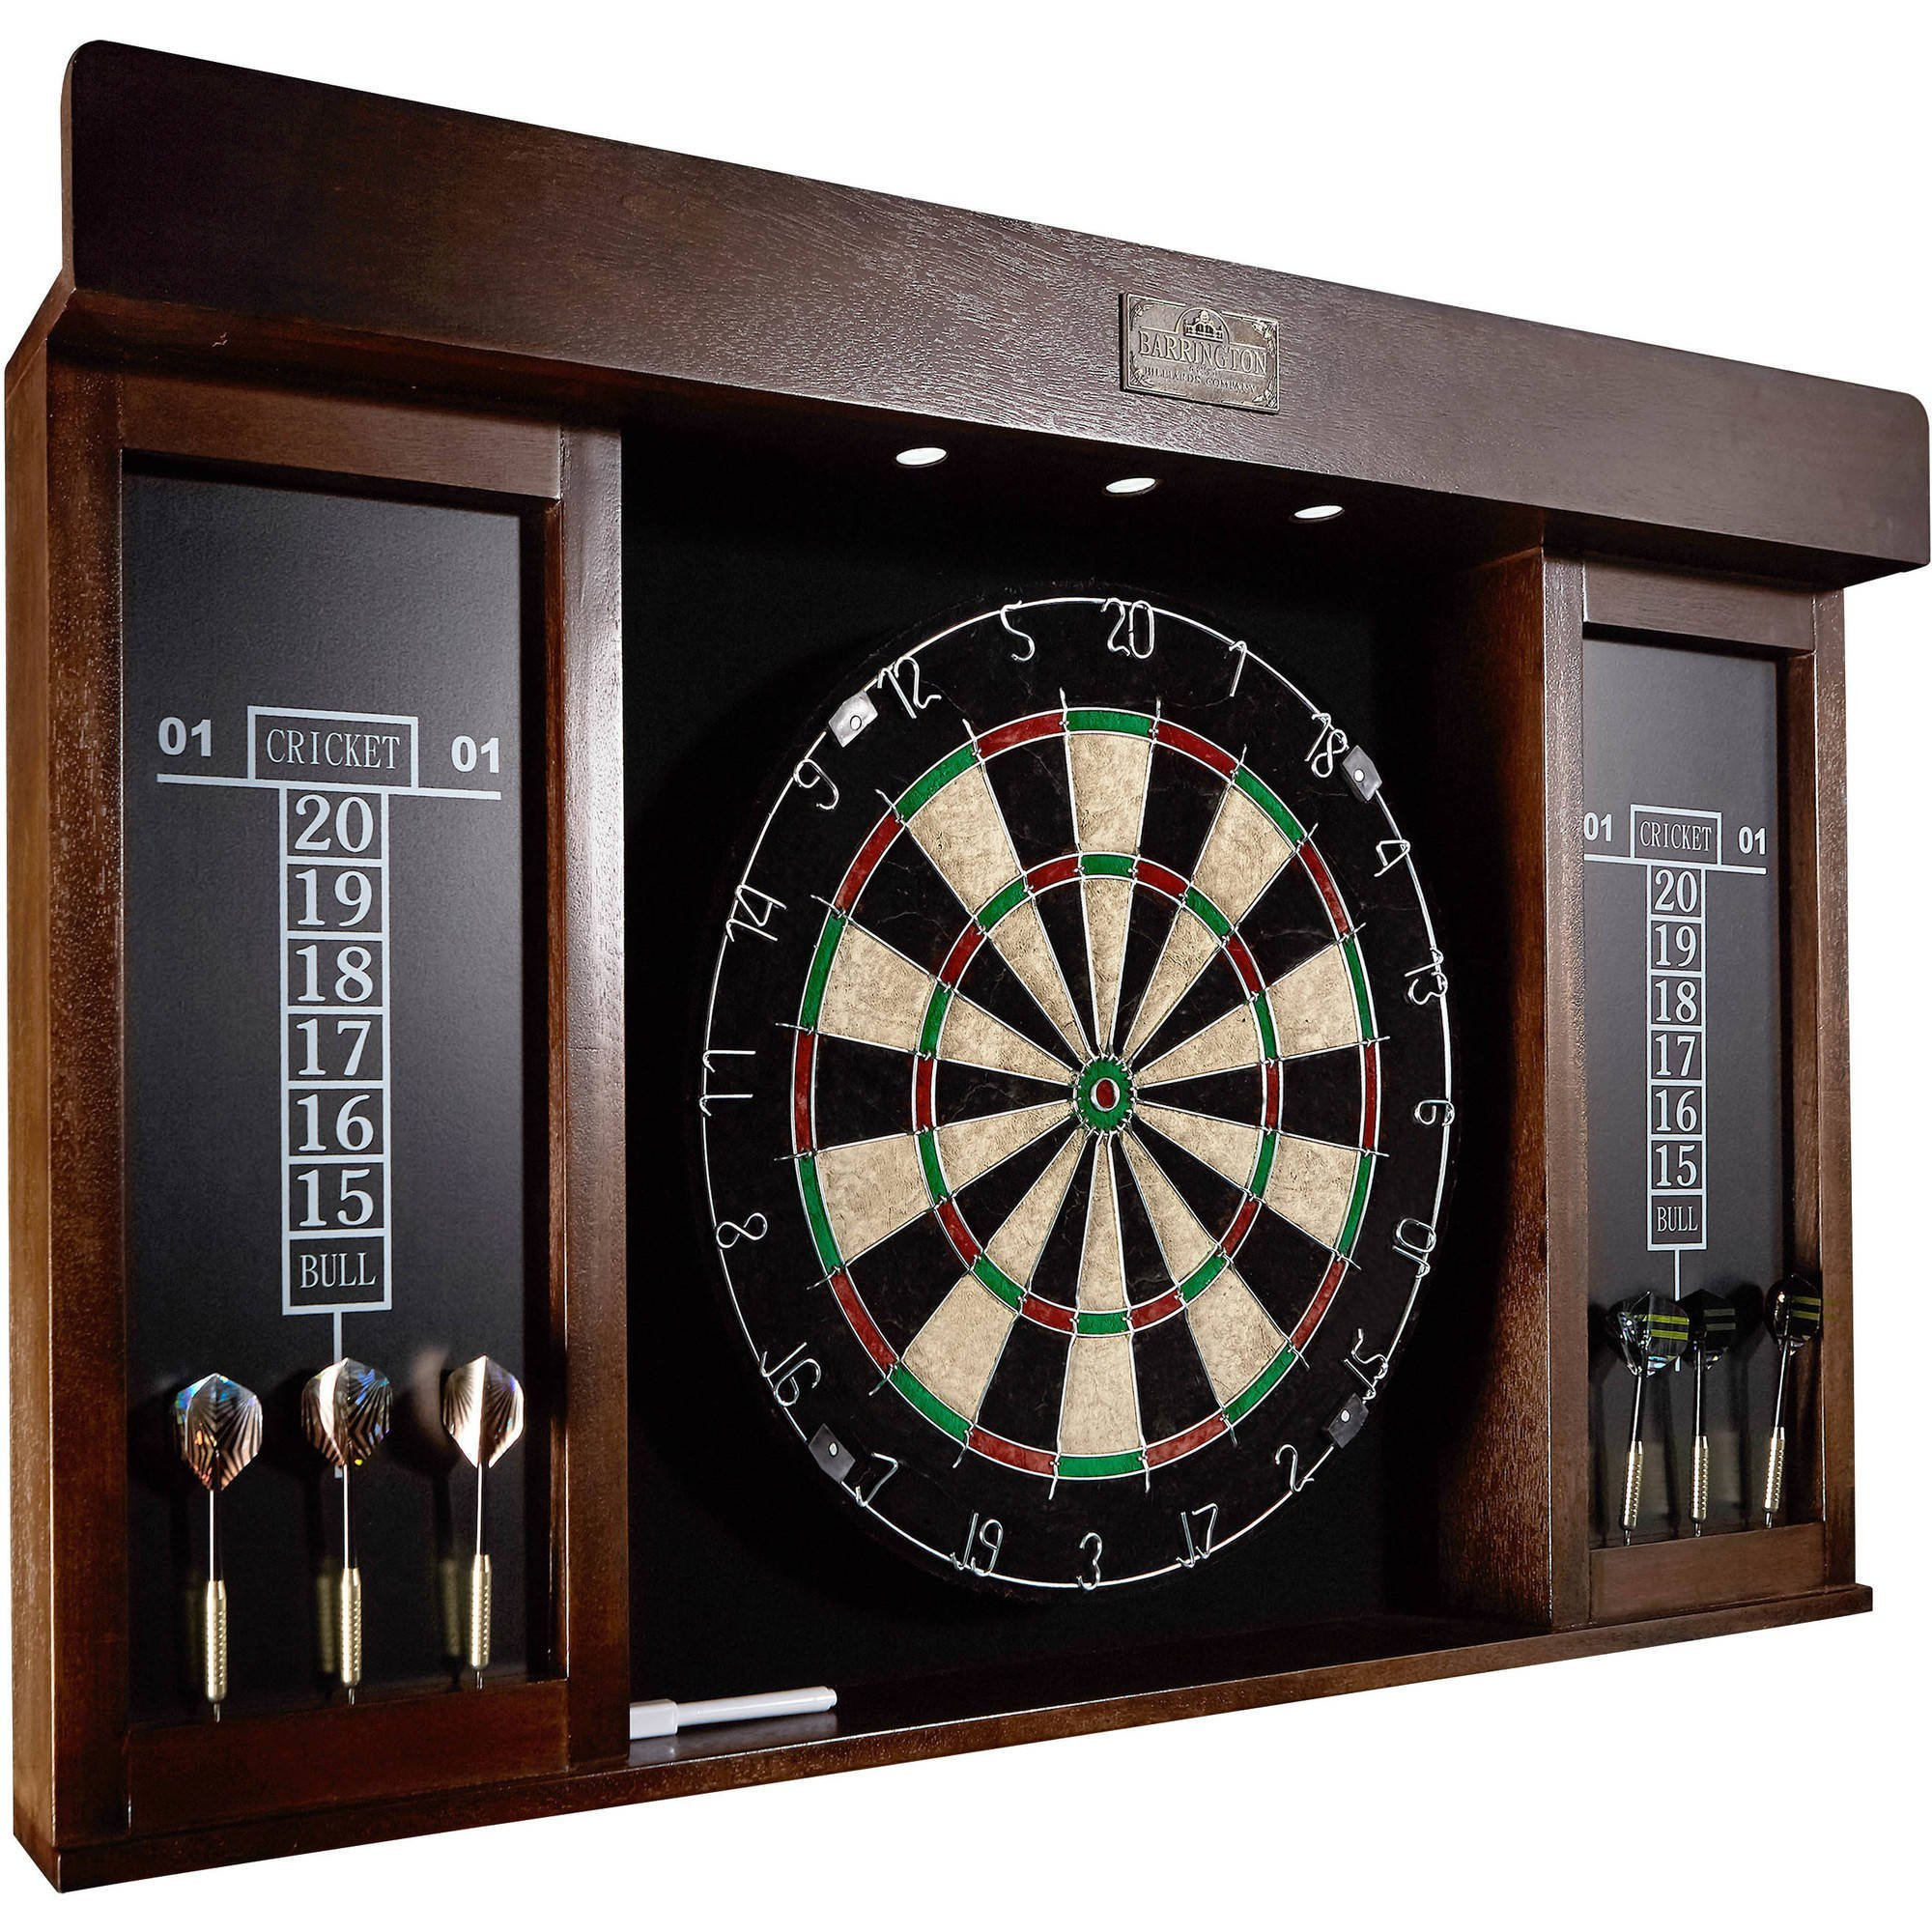 Barrington 40 Inch Dartboard Cabinet with LED Light